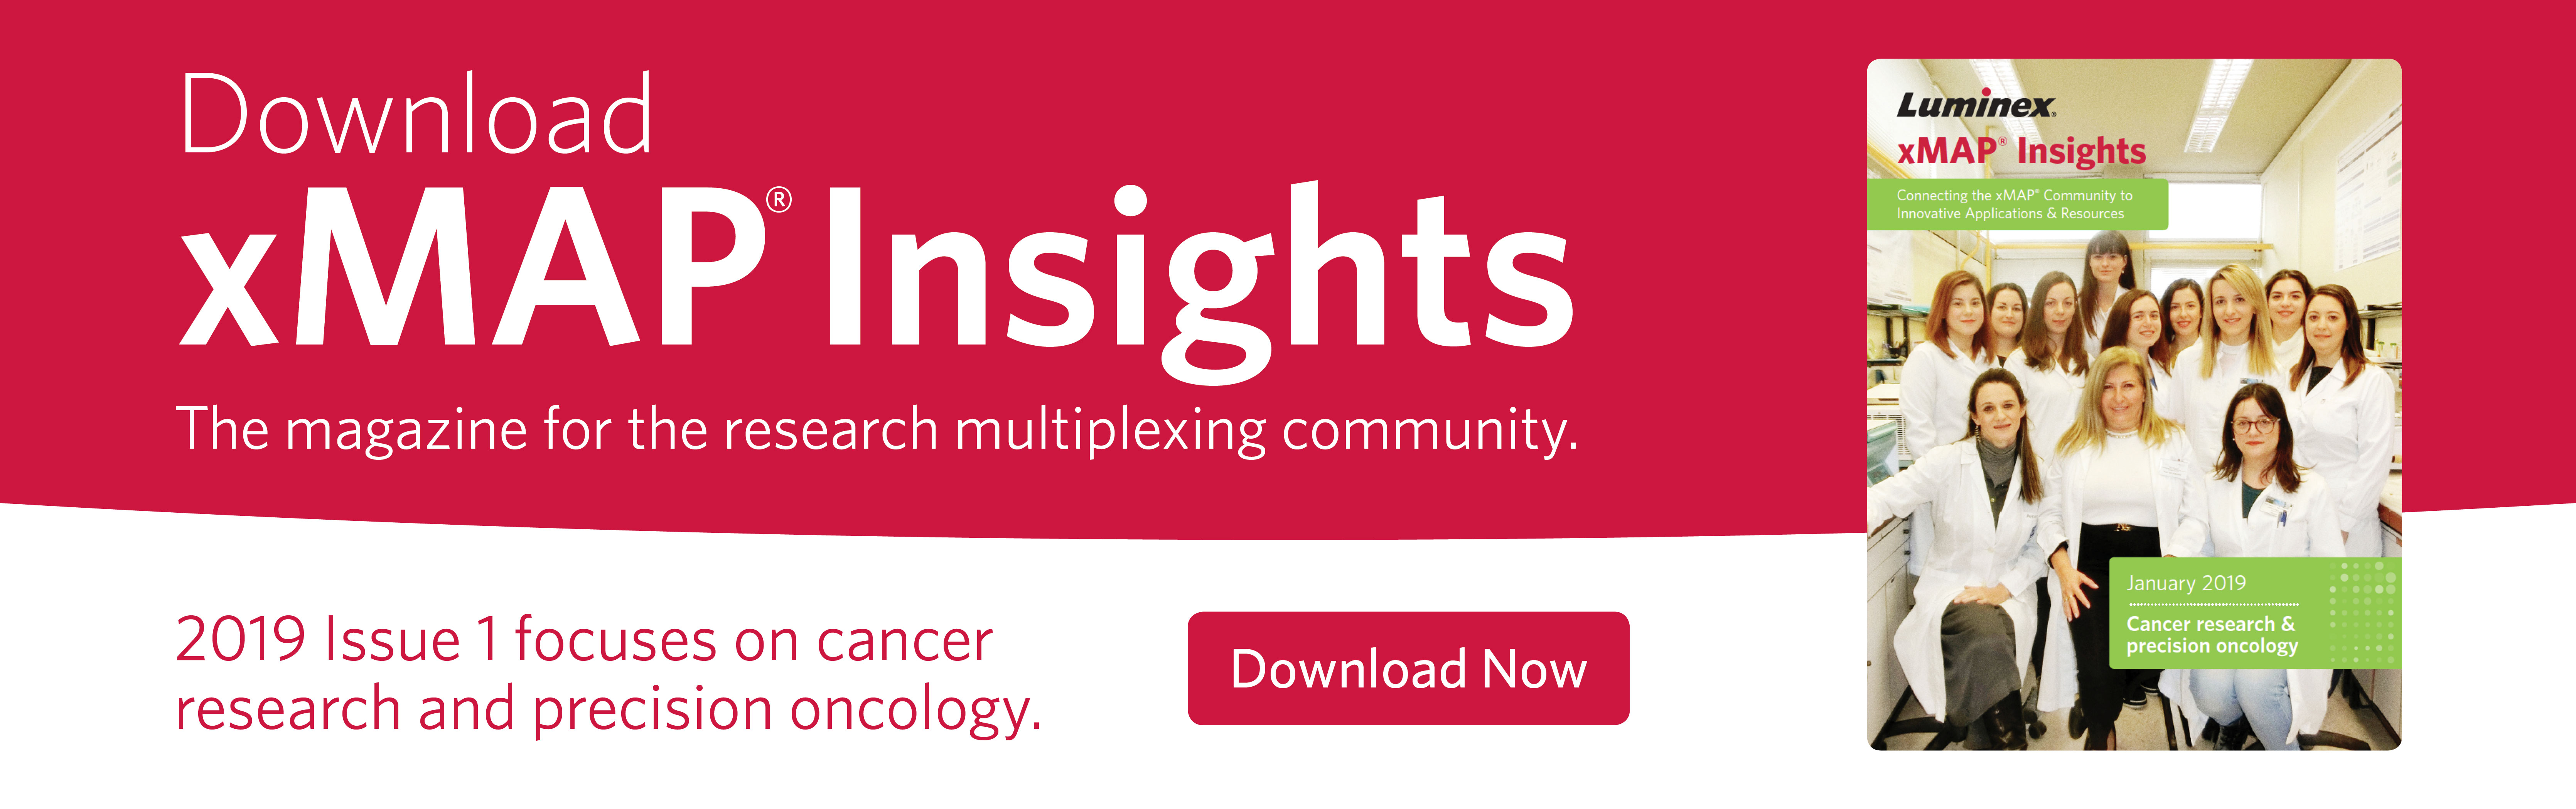 Download xMAP® Insights - the magazine for the research multiplexing community